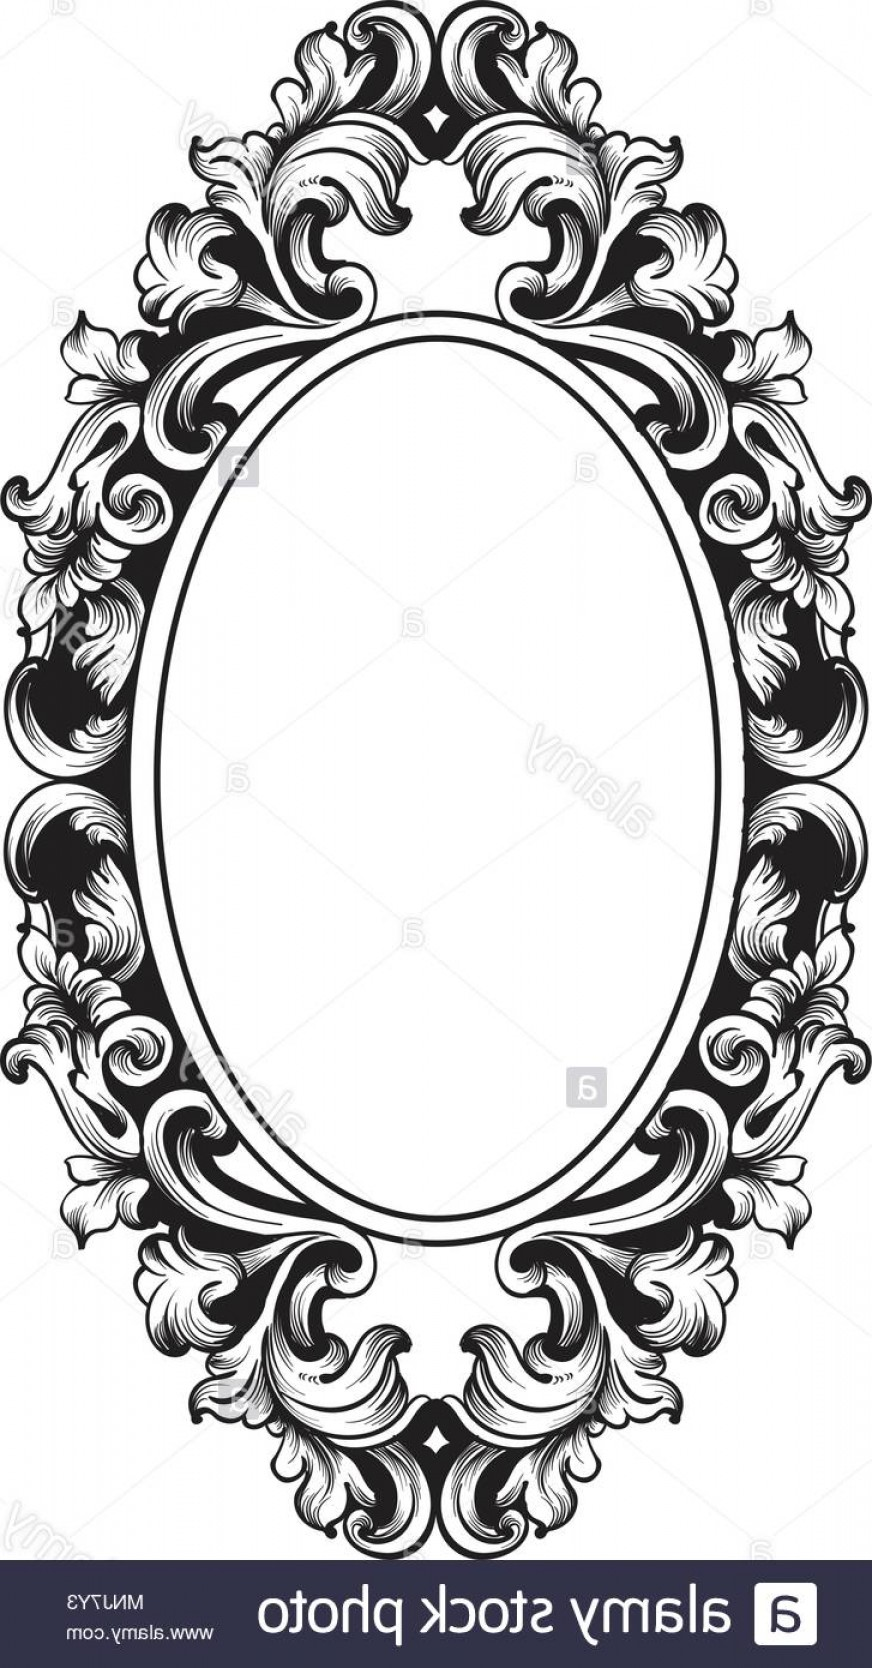 Victorian Ornamental Designs Vector: Baroque Frame Decor Vector Victorian Detailed Rich Ornament Illustration Royal Luxury Intricate Ornaments Graphic Line Art Style Image